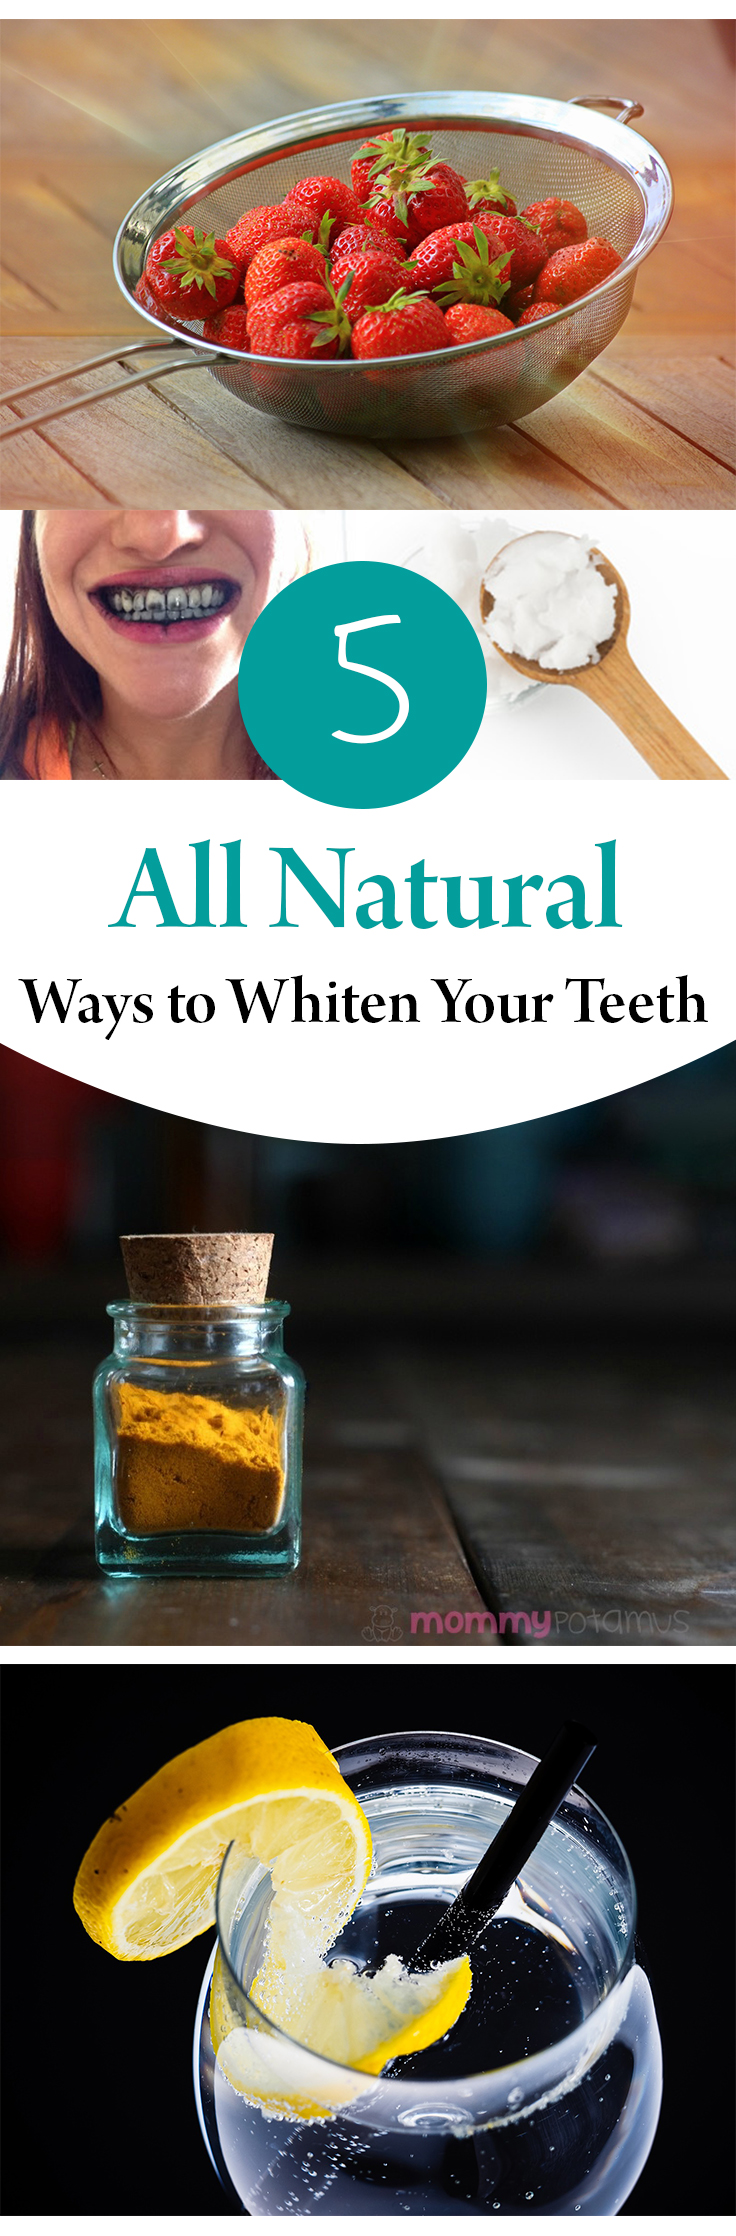 5 All Natural Ways to Whiten Your Teeth